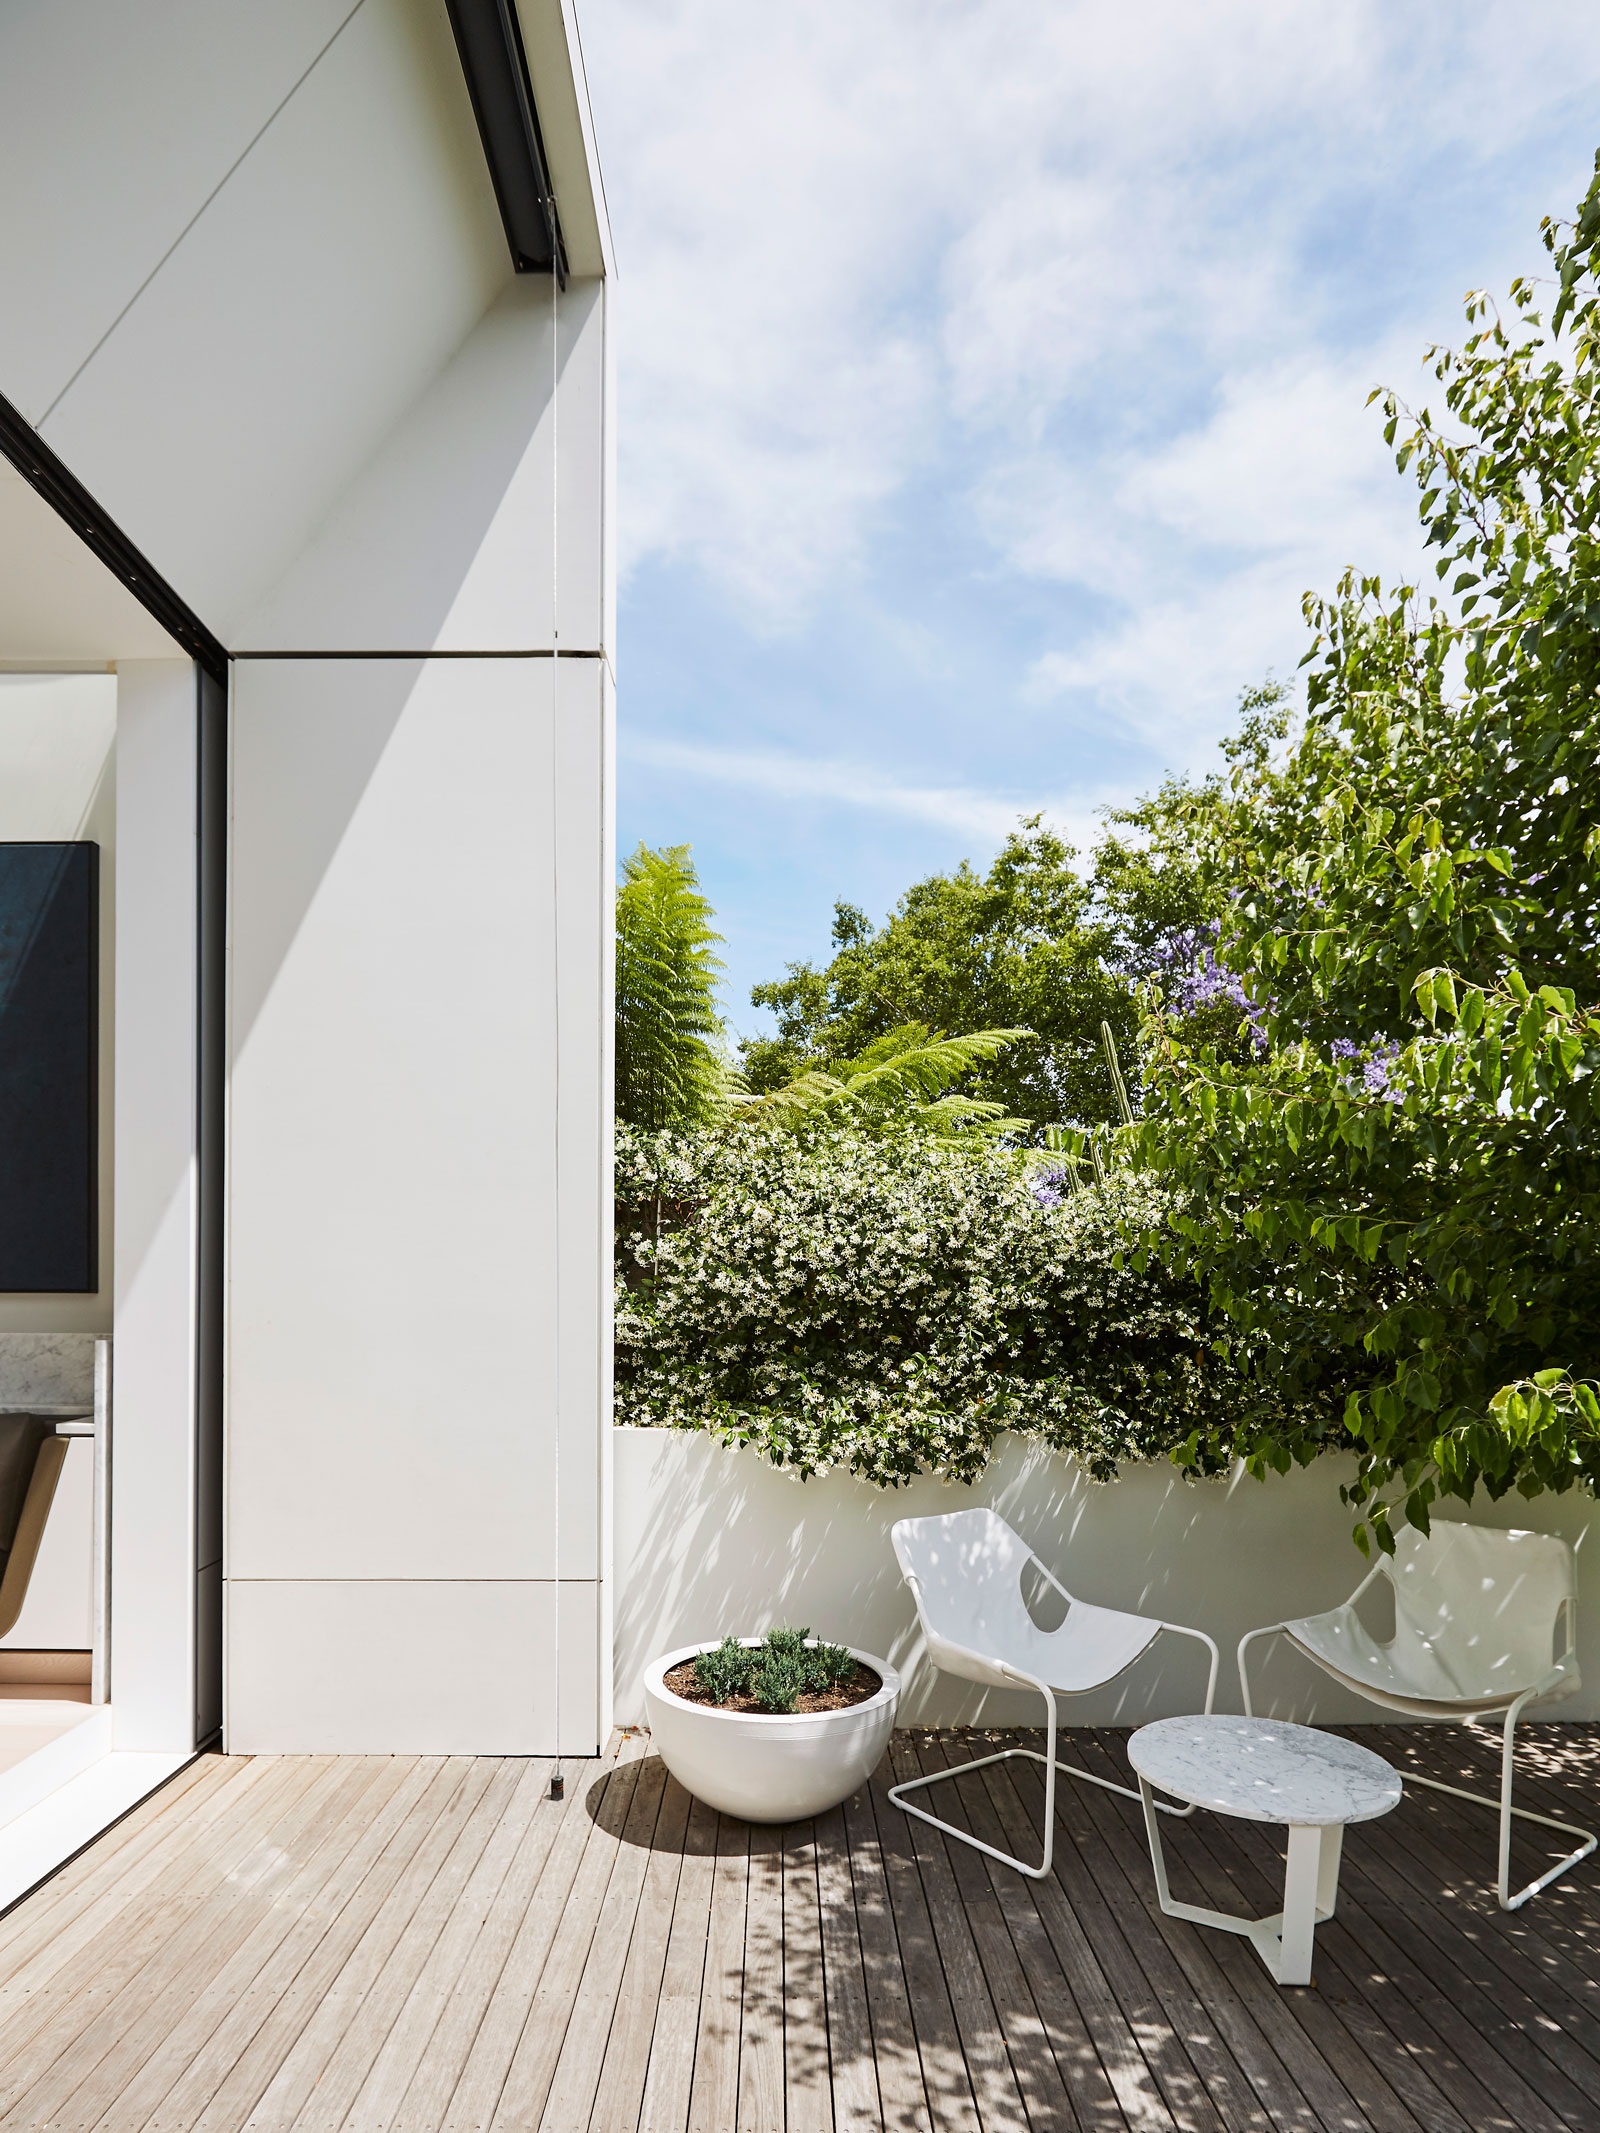 Smart Design Studio Have Breathed Fresh Life Into This Existing Terrace